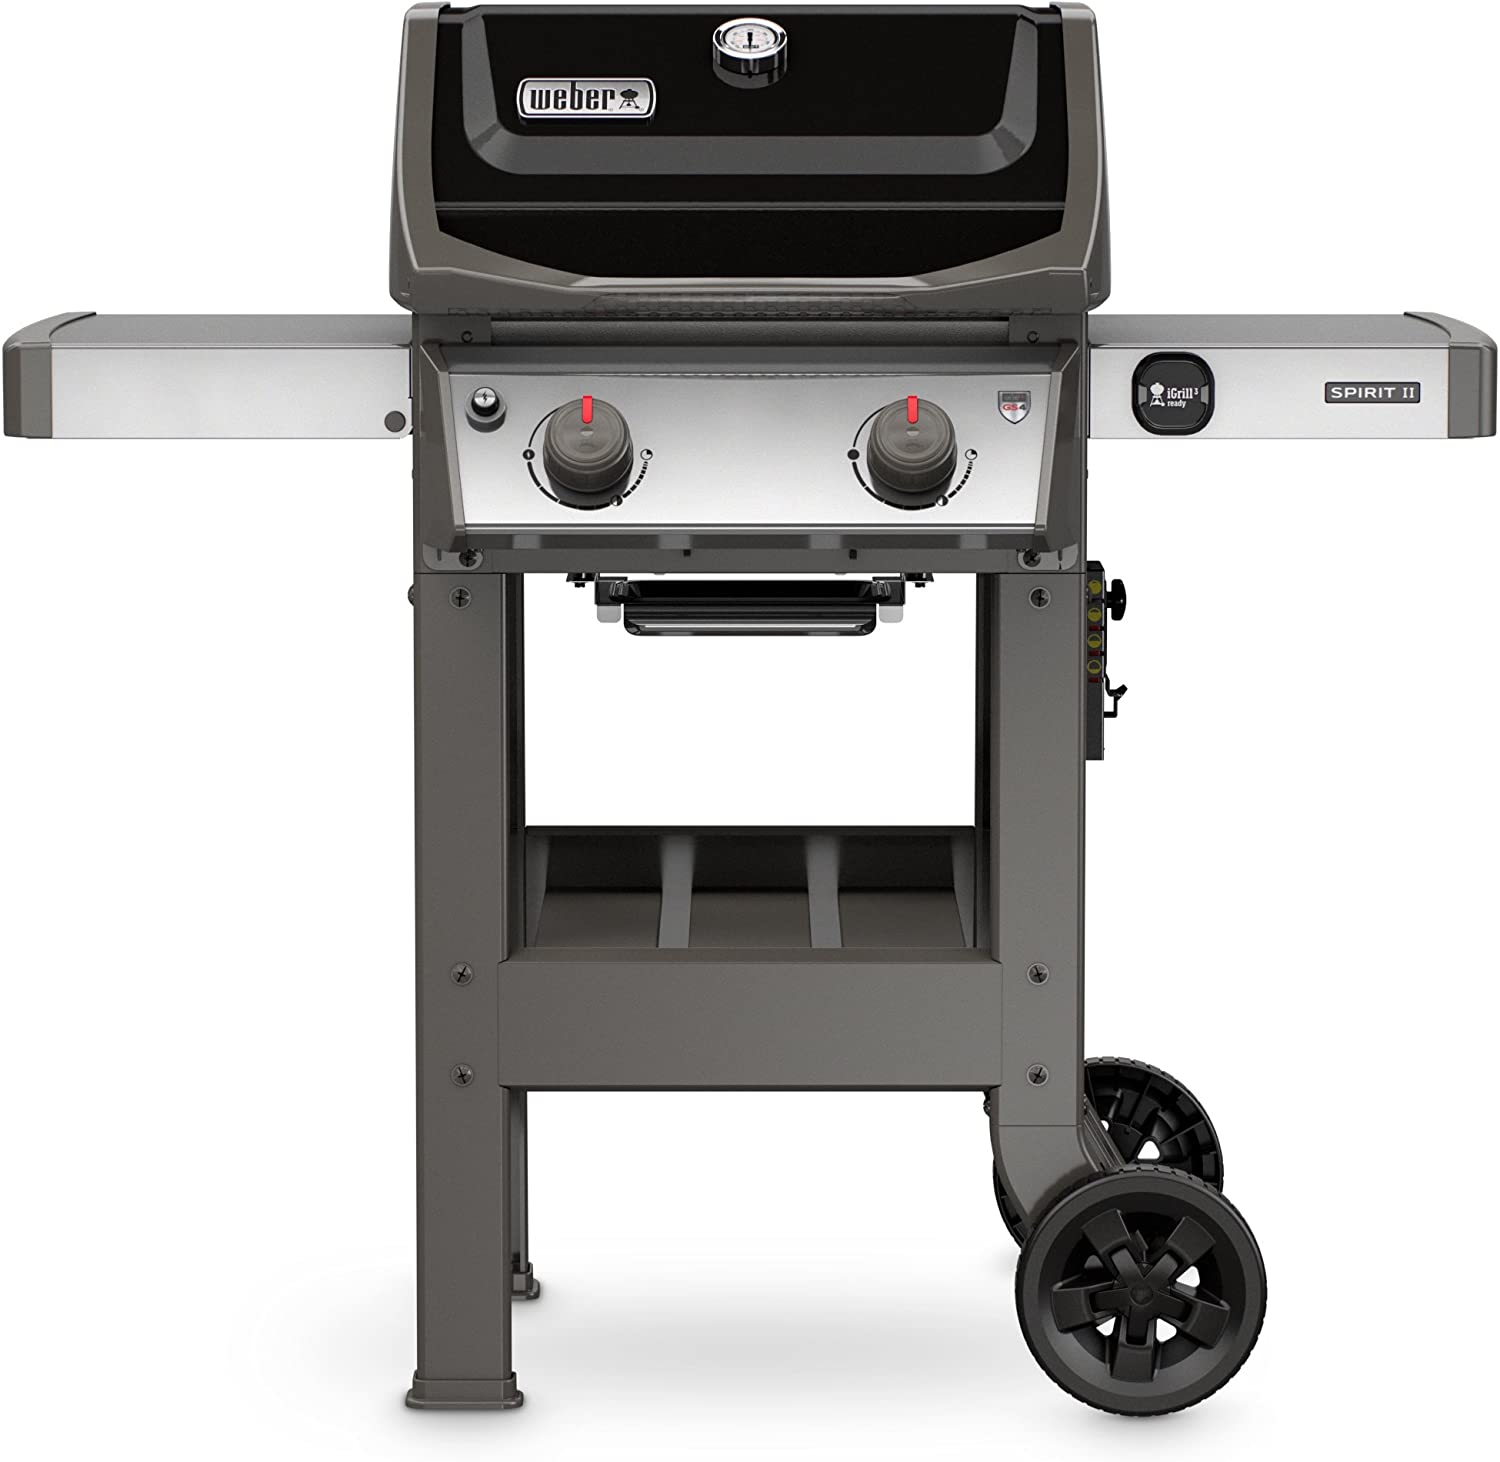 What's the best grill for the money? under 500$